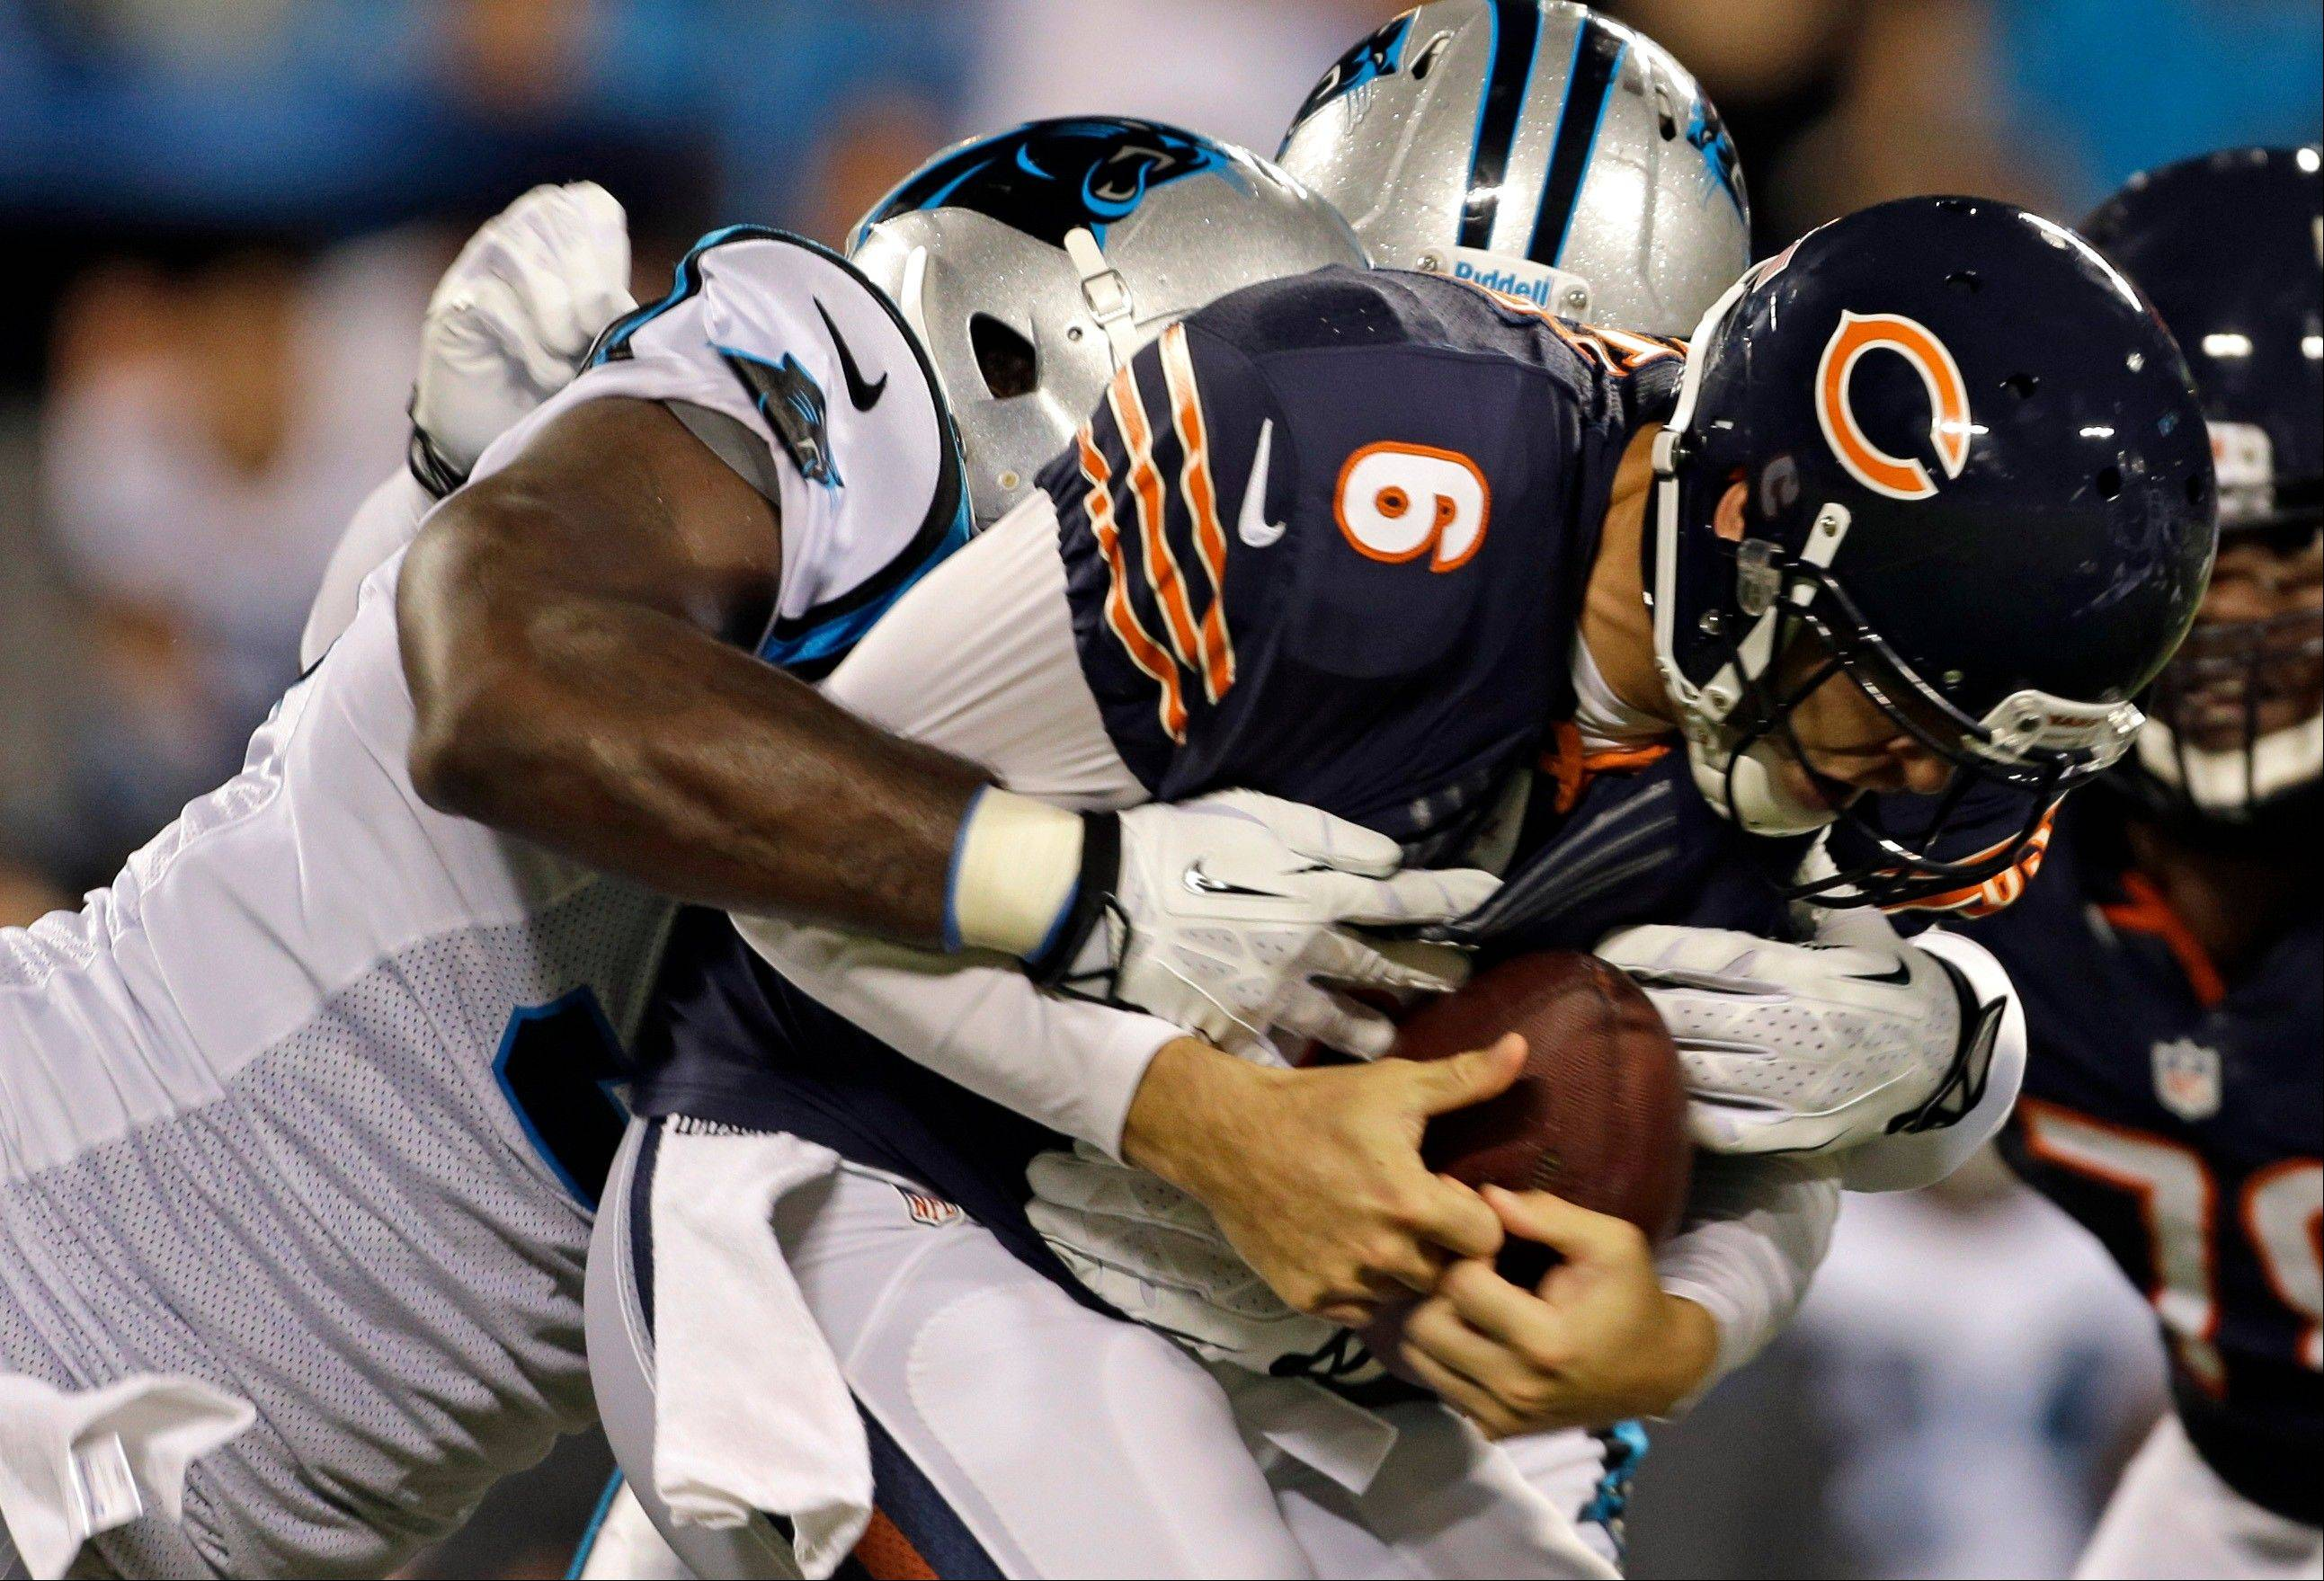 Bears quarterback Jay Cutler (6) is sacked by Carolina Panthers� Charles Johnson, left, during the first half of a preseason NFL football game in Charlotte, N.C., Friday, Aug. 9, 2013. (AP Photo/Bob Leverone)